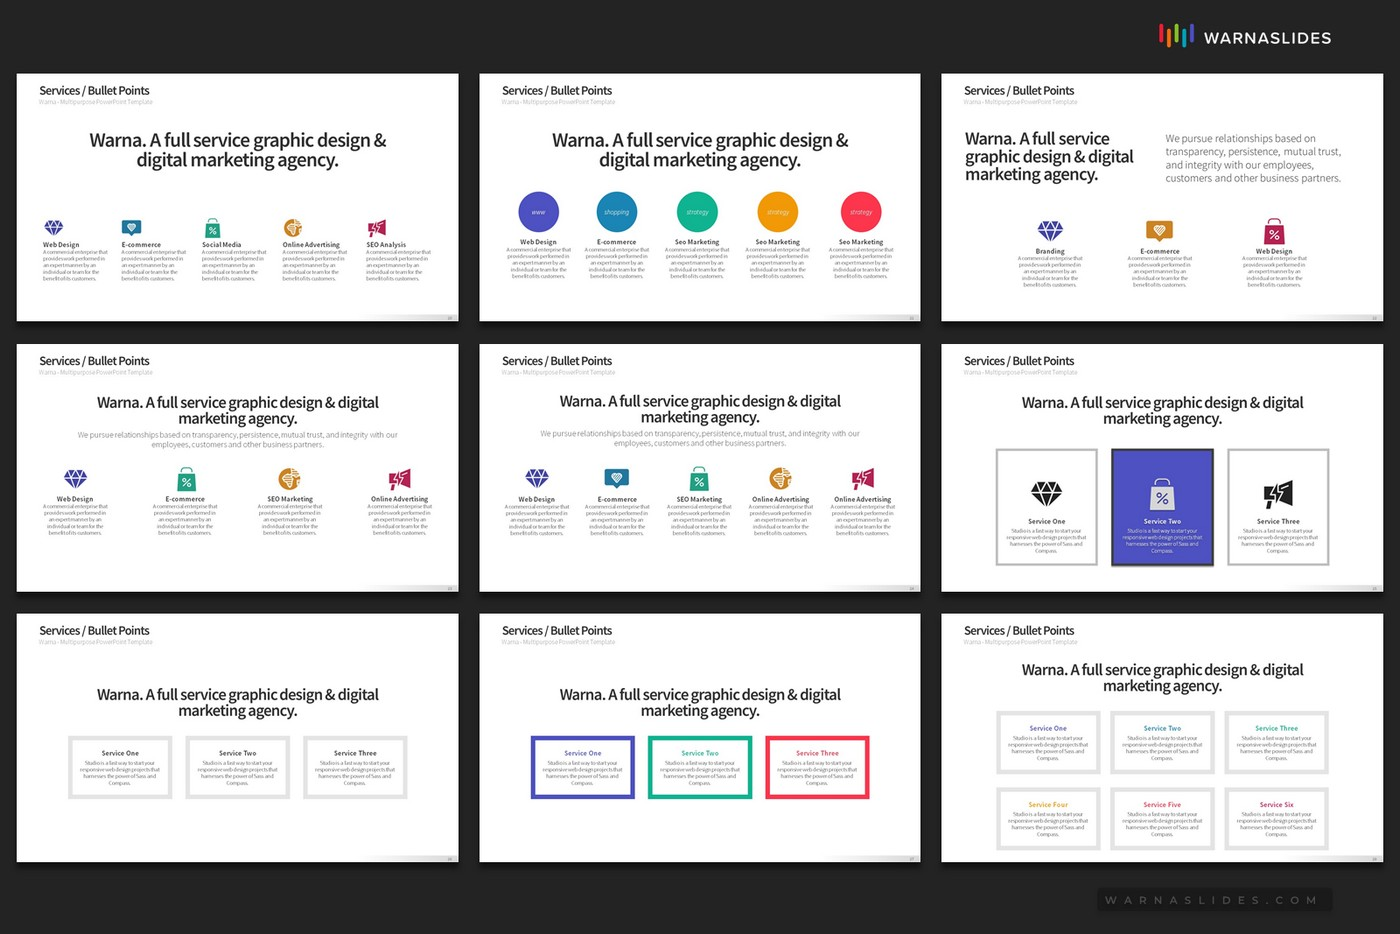 Services-SEO-Management-Bullet-Points-PowerPoint-Template-for-Business-Pitch-Deck-Professional-Creative-PowerPoint-Icons-008